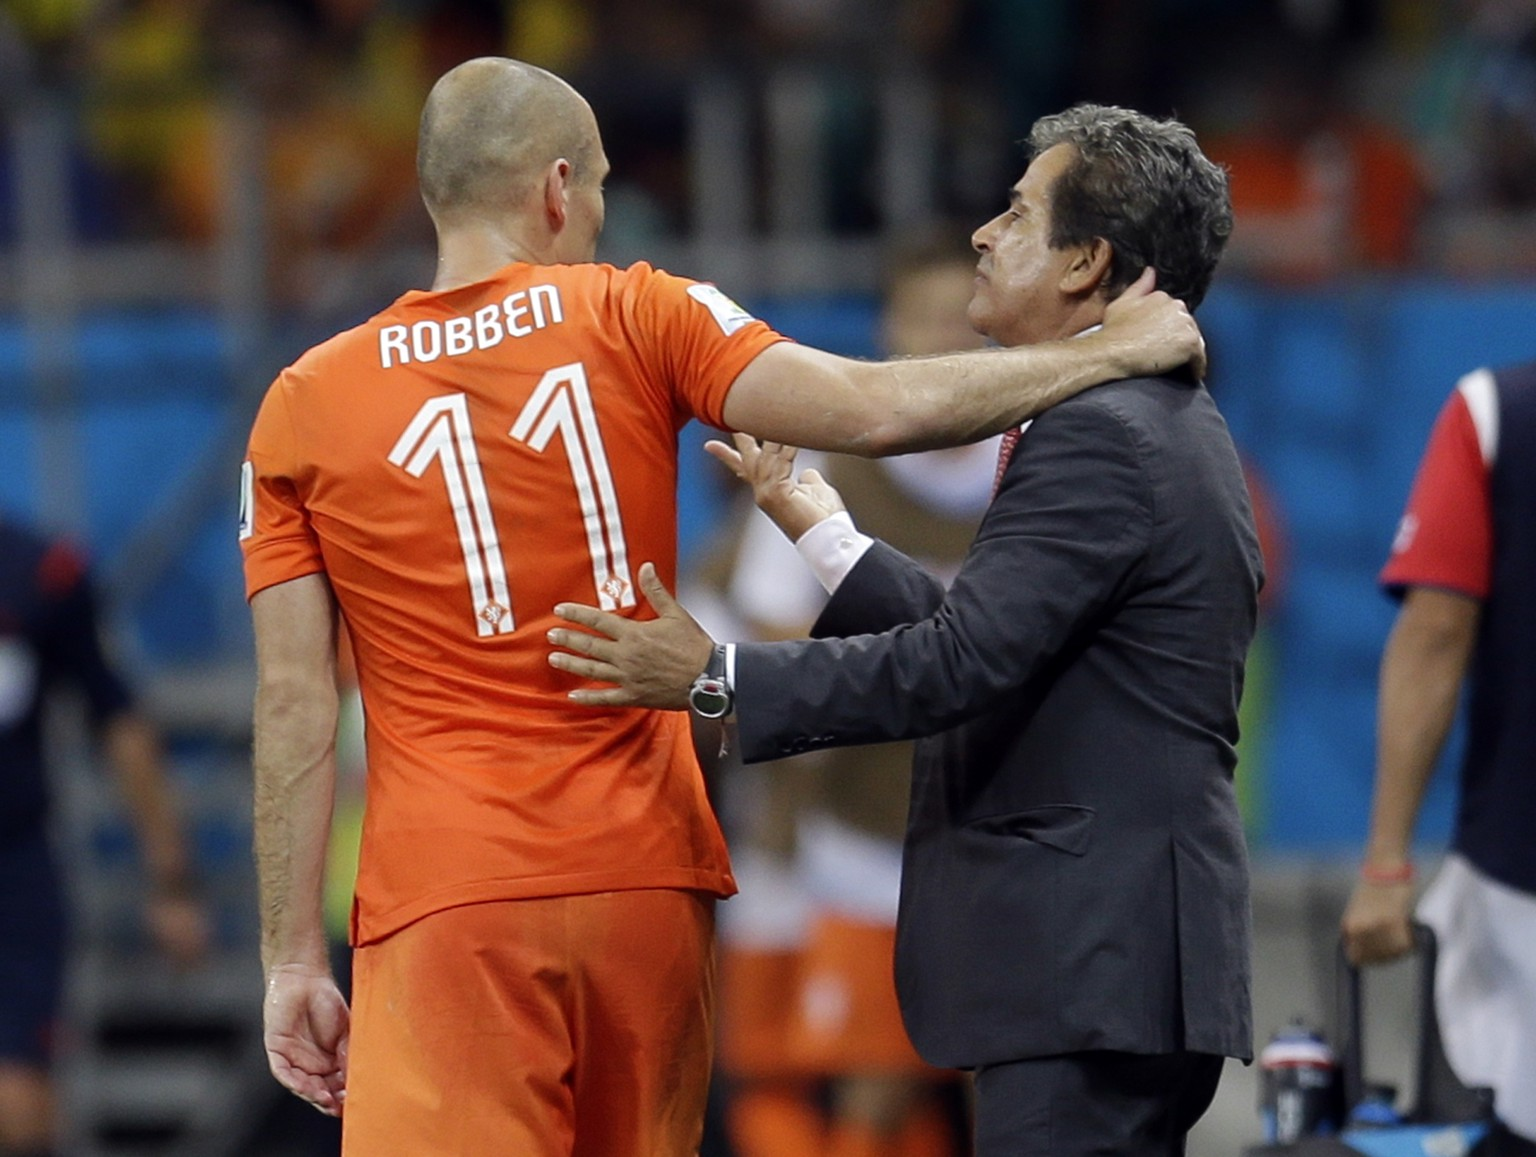 Netherlands' Arjen Robben has a word with Costa Rica's head coach Jorge Luis Pinto during extra time in the World Cup quarterfinal soccer match between the Netherlands and Costa Rica at the Arena Fonte Nova in Salvador, Brazil, Saturday, July 5, 2014. (AP Photo/Natacha Pisarenko)